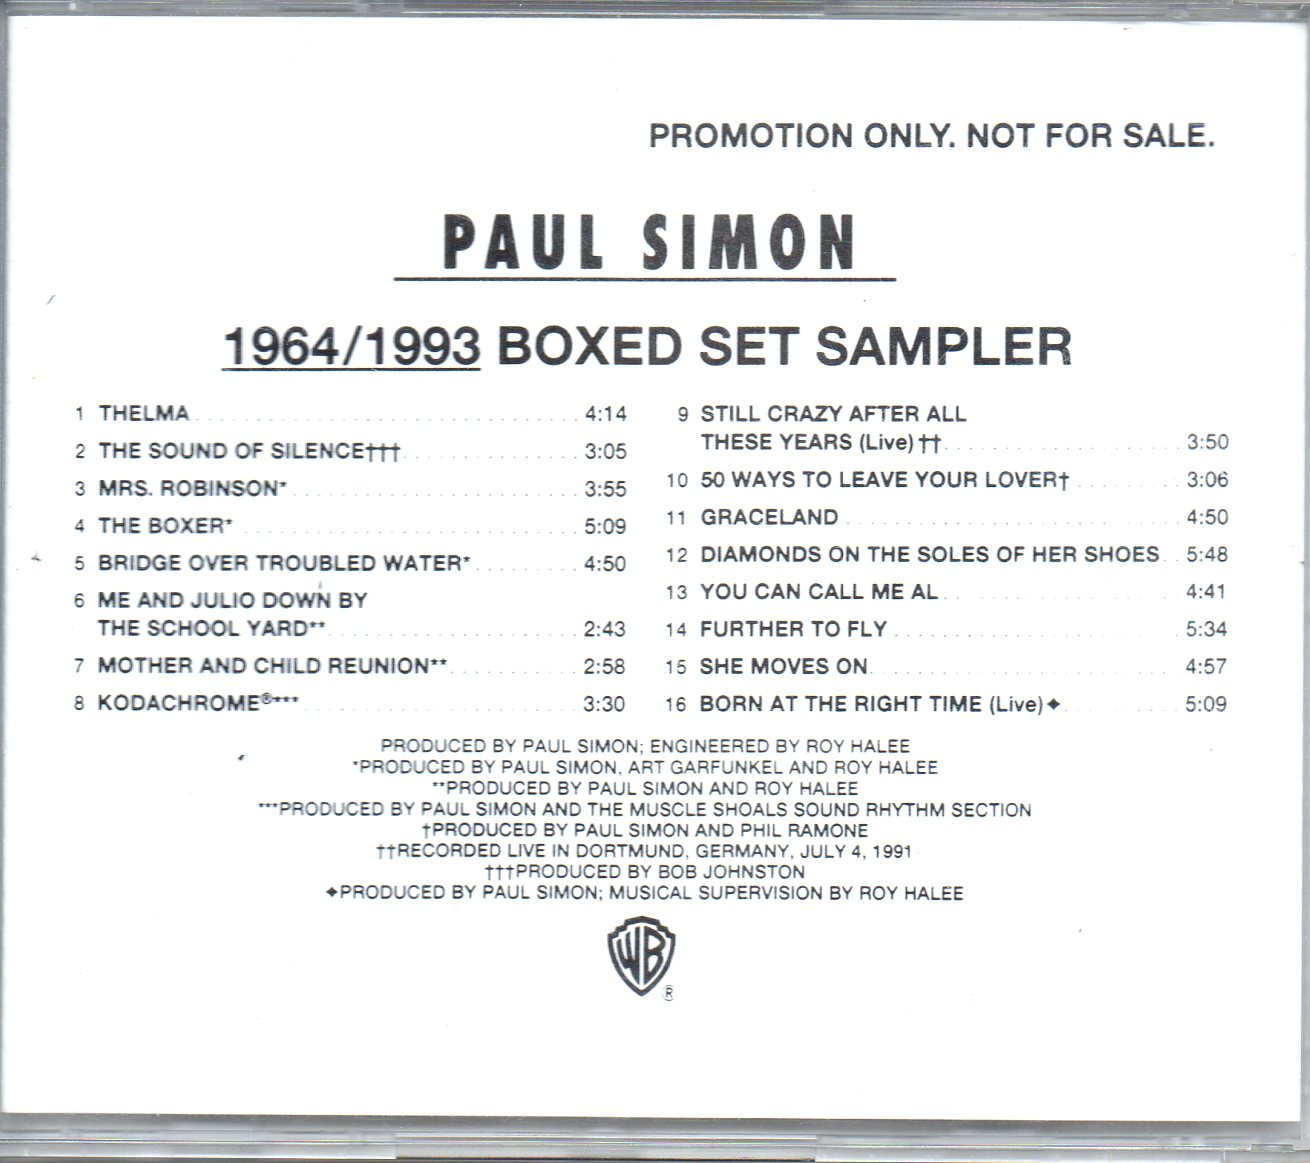 PAUL SIMON - 1964/1993 Boxed Set Sampler - CD